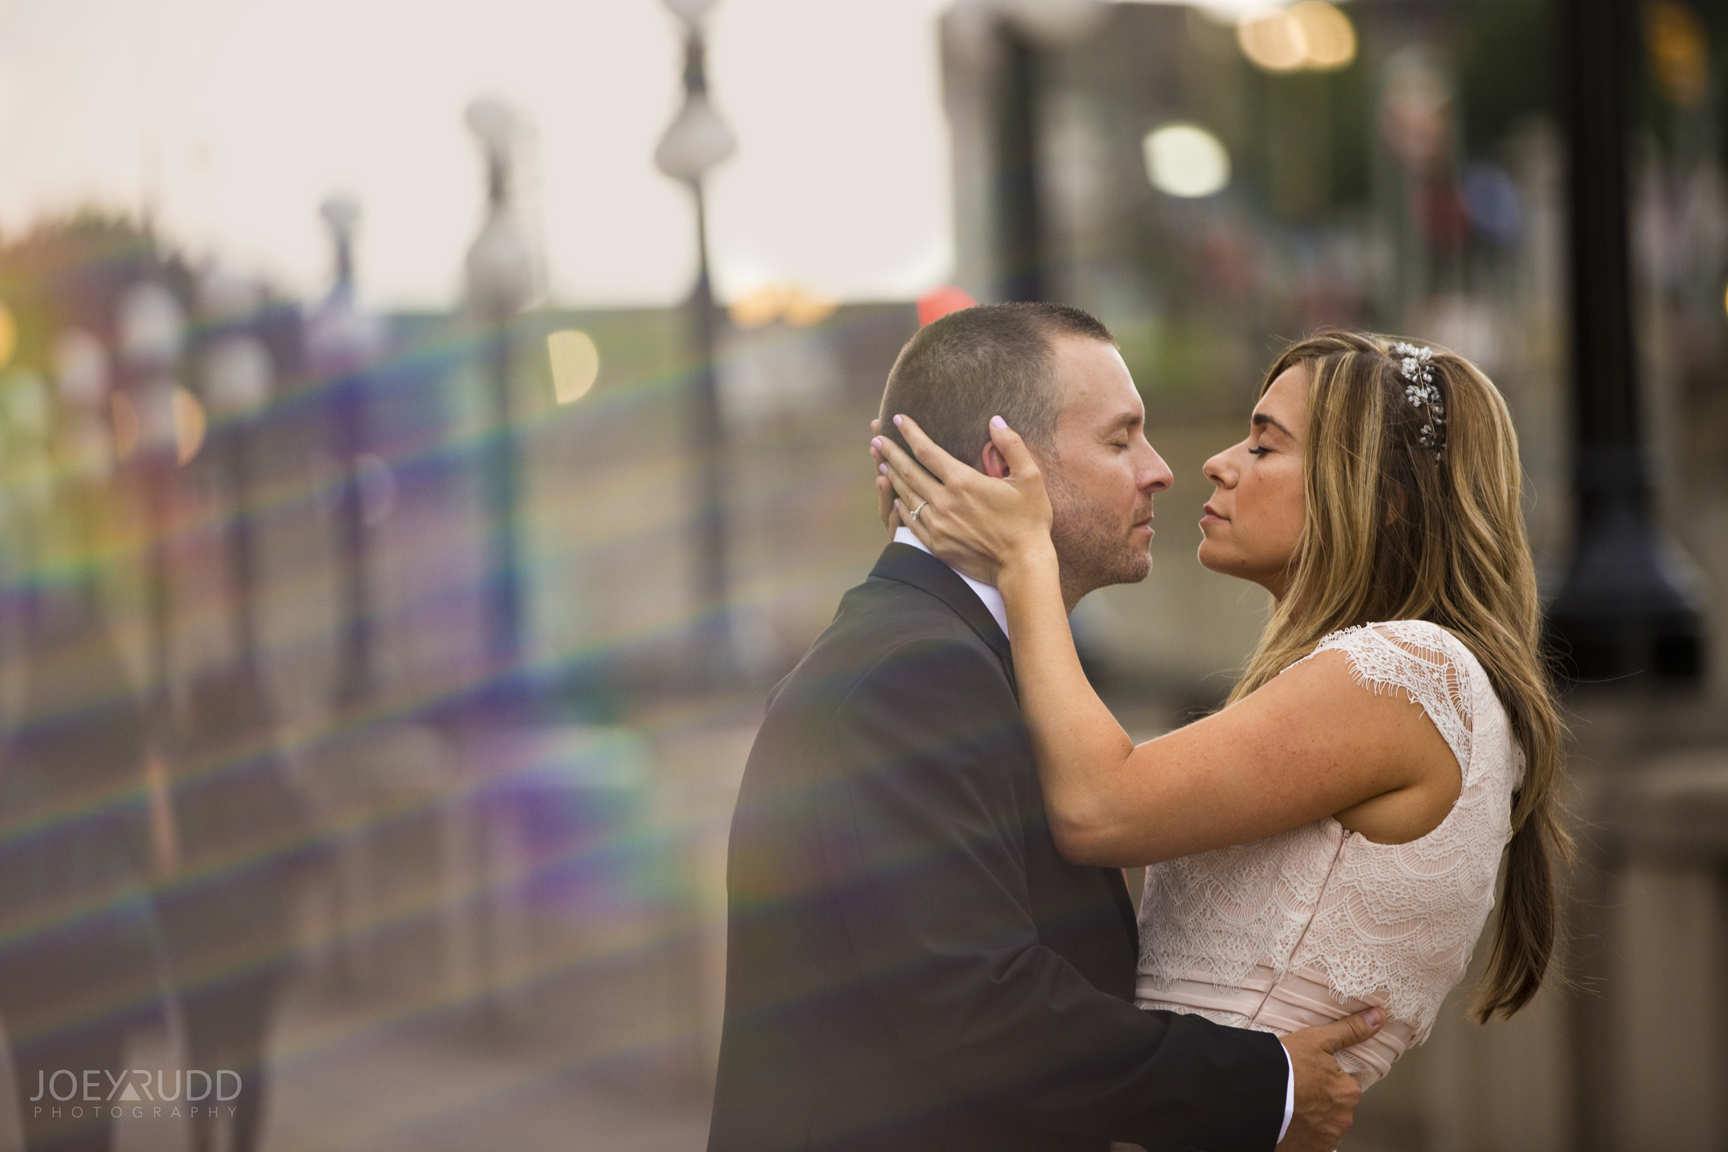 Elopement Wedding by Ottawa Wedding Photographer Joey Rudd Photography Majors Hill Prisming Chateau Laurier